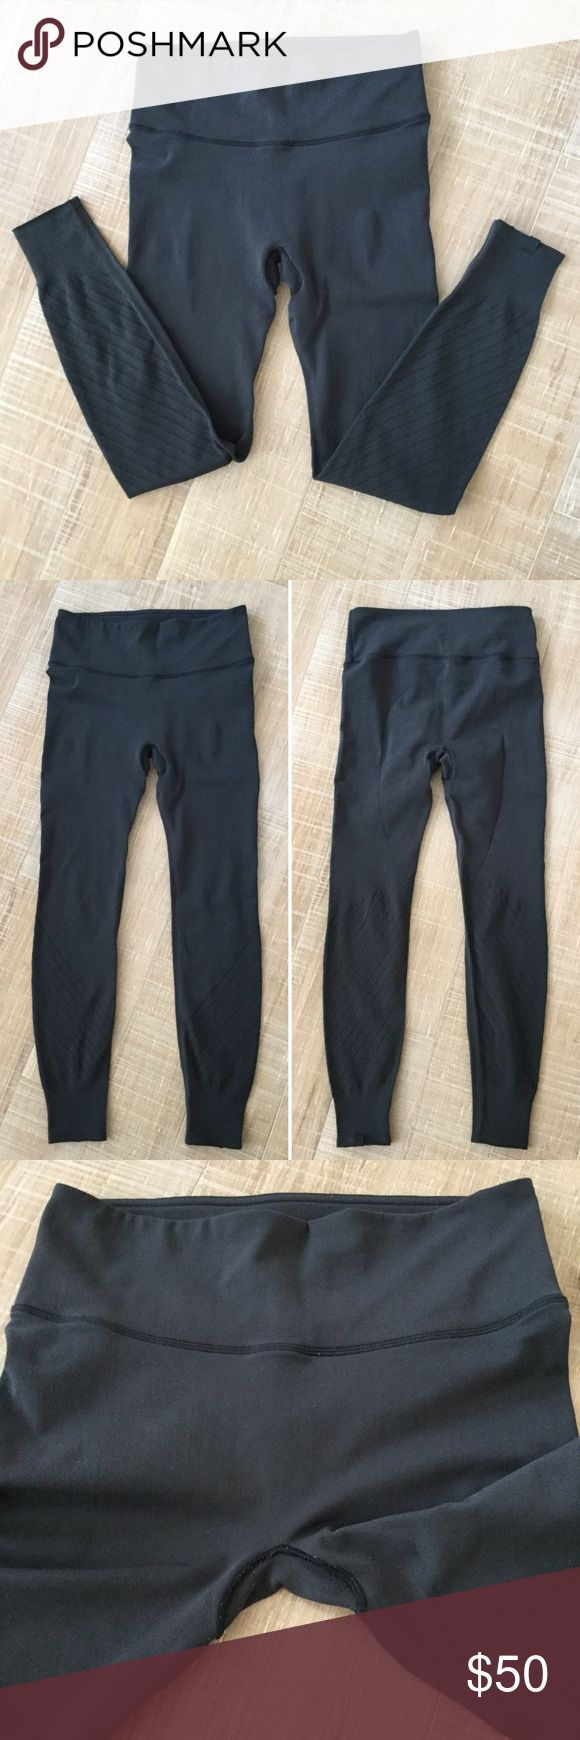 """LULULEMON Perforated Charcoal Leggings Lululemon Perforated Charcoal Leggings. Size is unmarked, but seems to fit a 4 or 6. Please use measurements to best gauge fit. Overall good condition. Some pilling, but not overly so. Most of the wear is at the crotch, please see all photos. Logo at the bottom of the leg, inner pocket. Unique style! No trades, please. Thank you. 👉waist flat: 13"""", front rise: 9"""", inseam: 25"""" lululemon athletica Pants Leggings"""